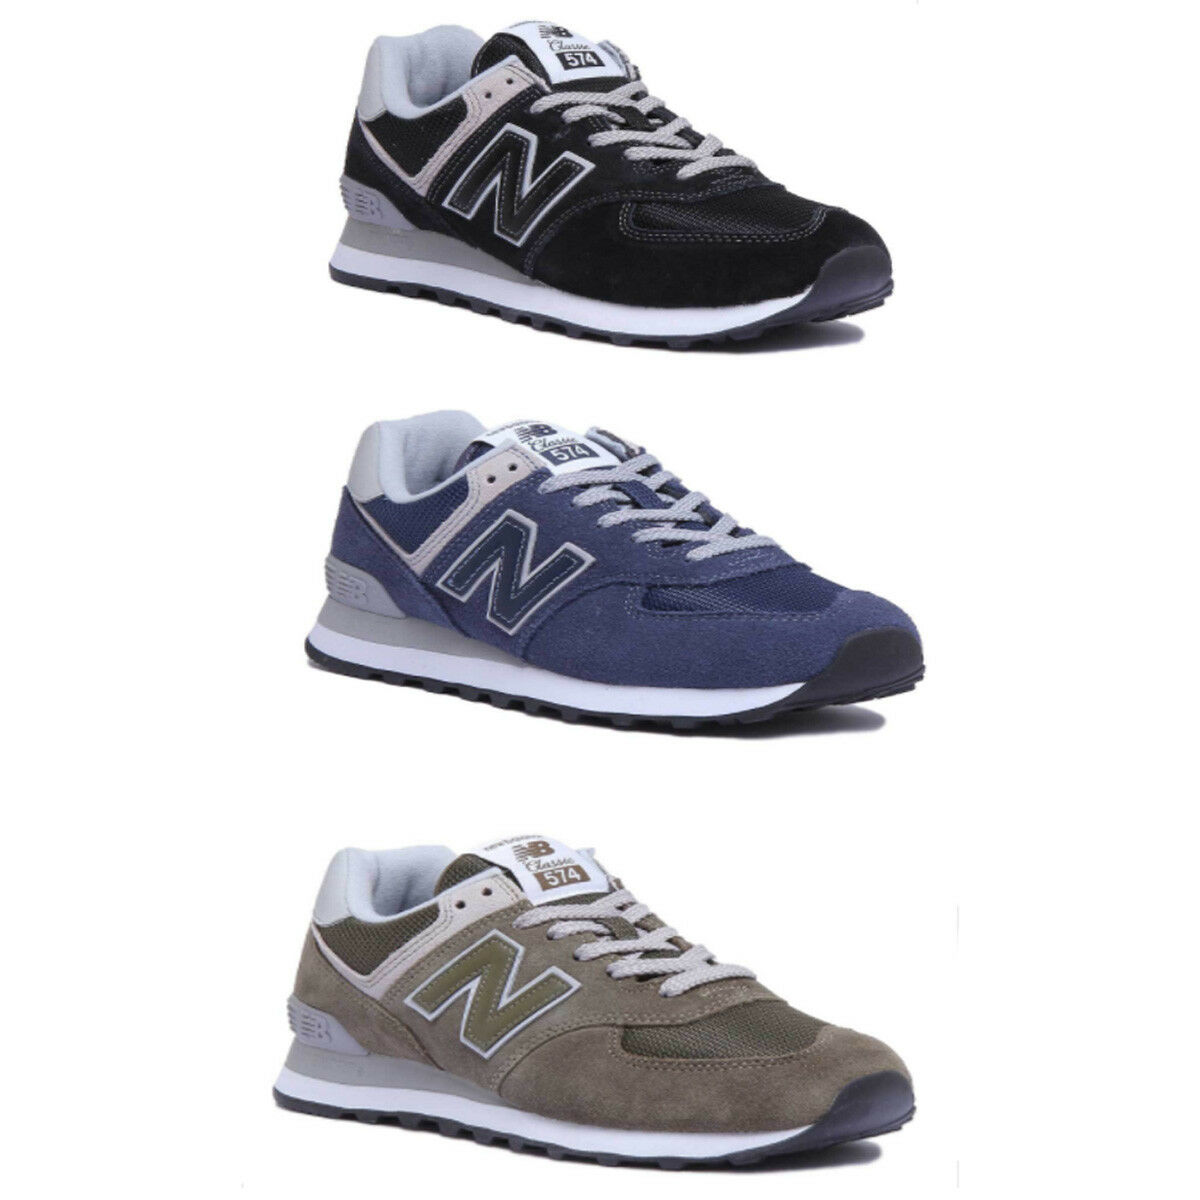 New Balance Ml574Ego Chaussures Femme Olive divers Baskets Taille UK 3 - 8